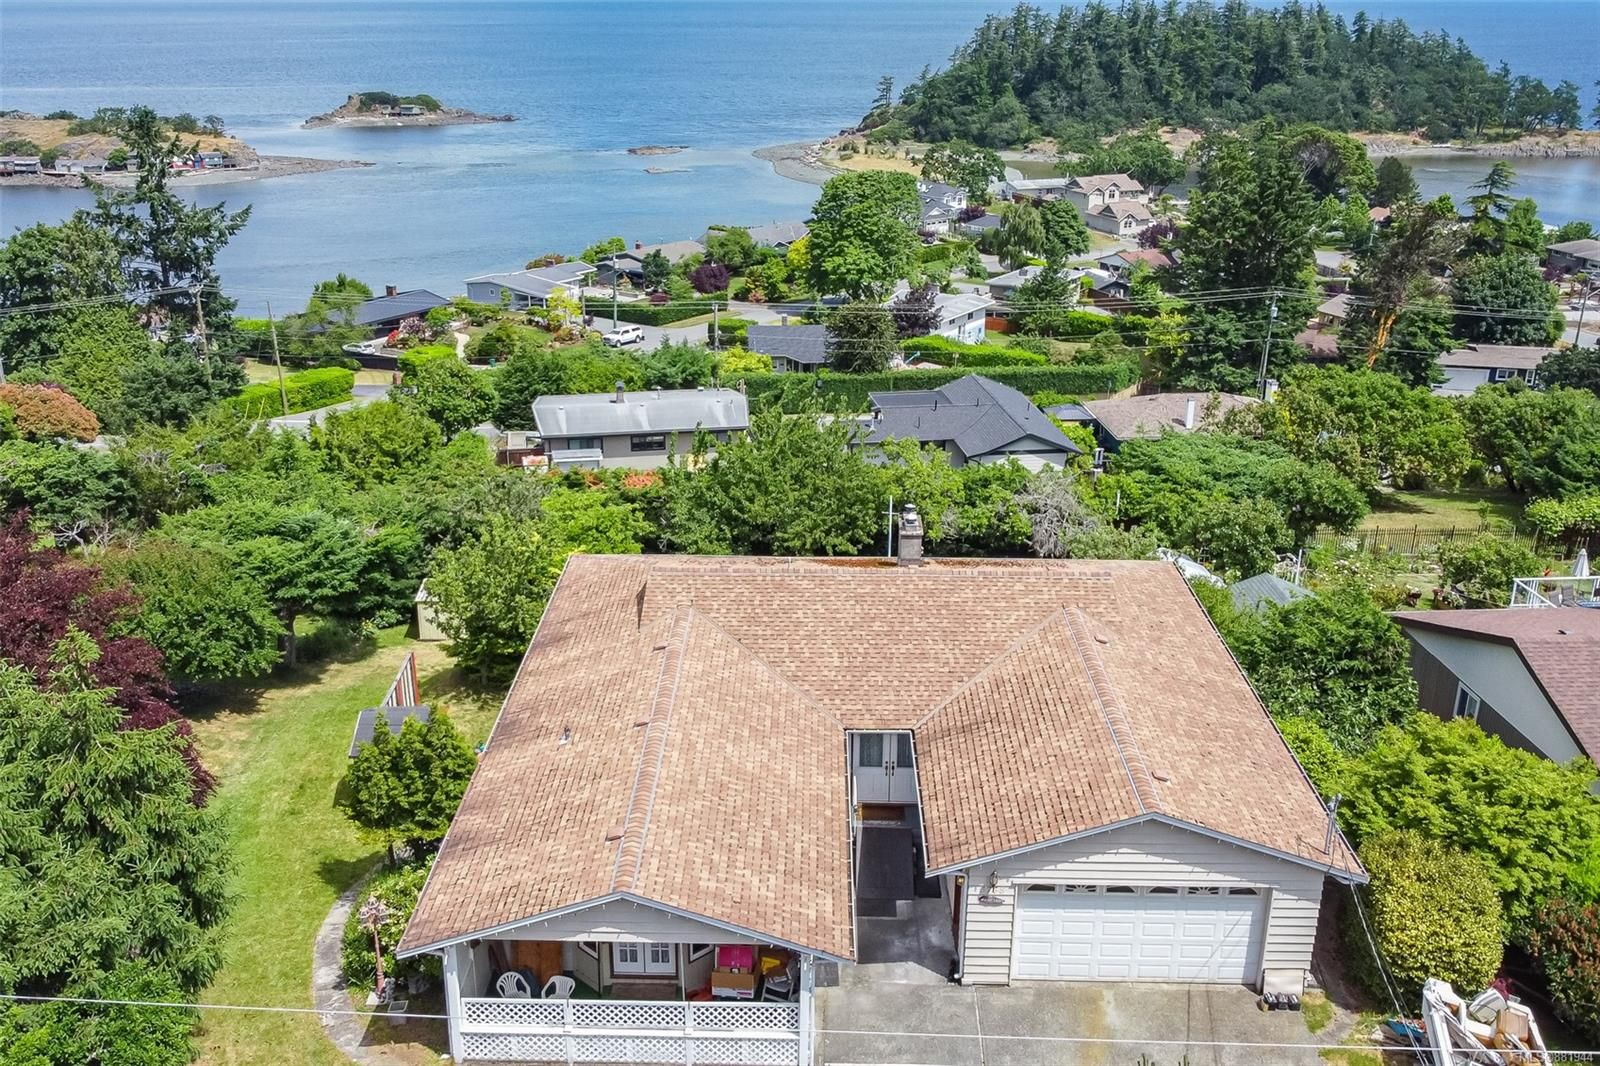 Main Photo: 3738 Overlook Dr in Nanaimo: Na Hammond Bay House for sale : MLS®# 881944